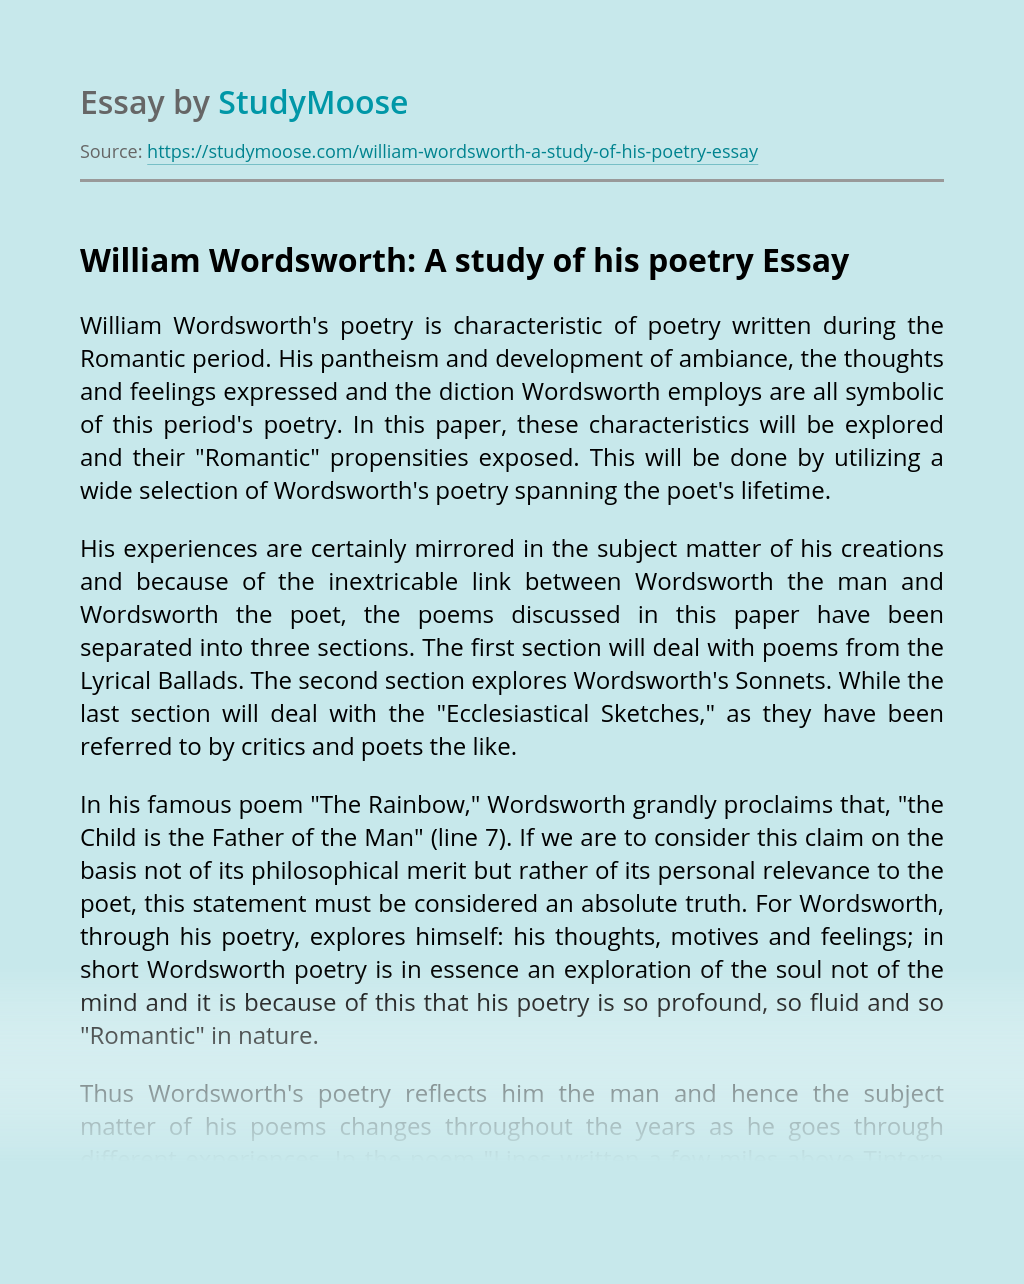 William Wordsworth: A study of his poetry